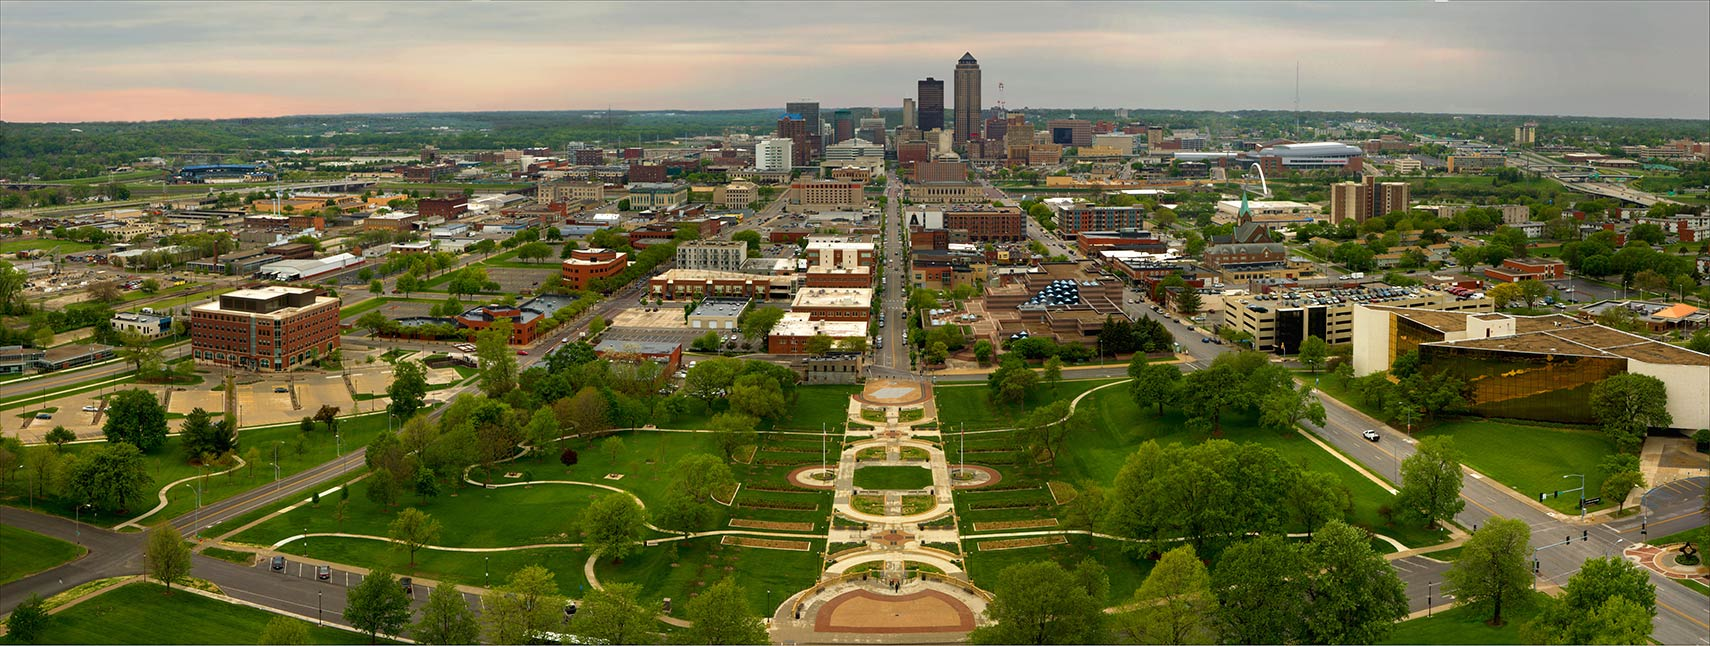 Downtown Des Moines, view from top of Iowa Capitol Building